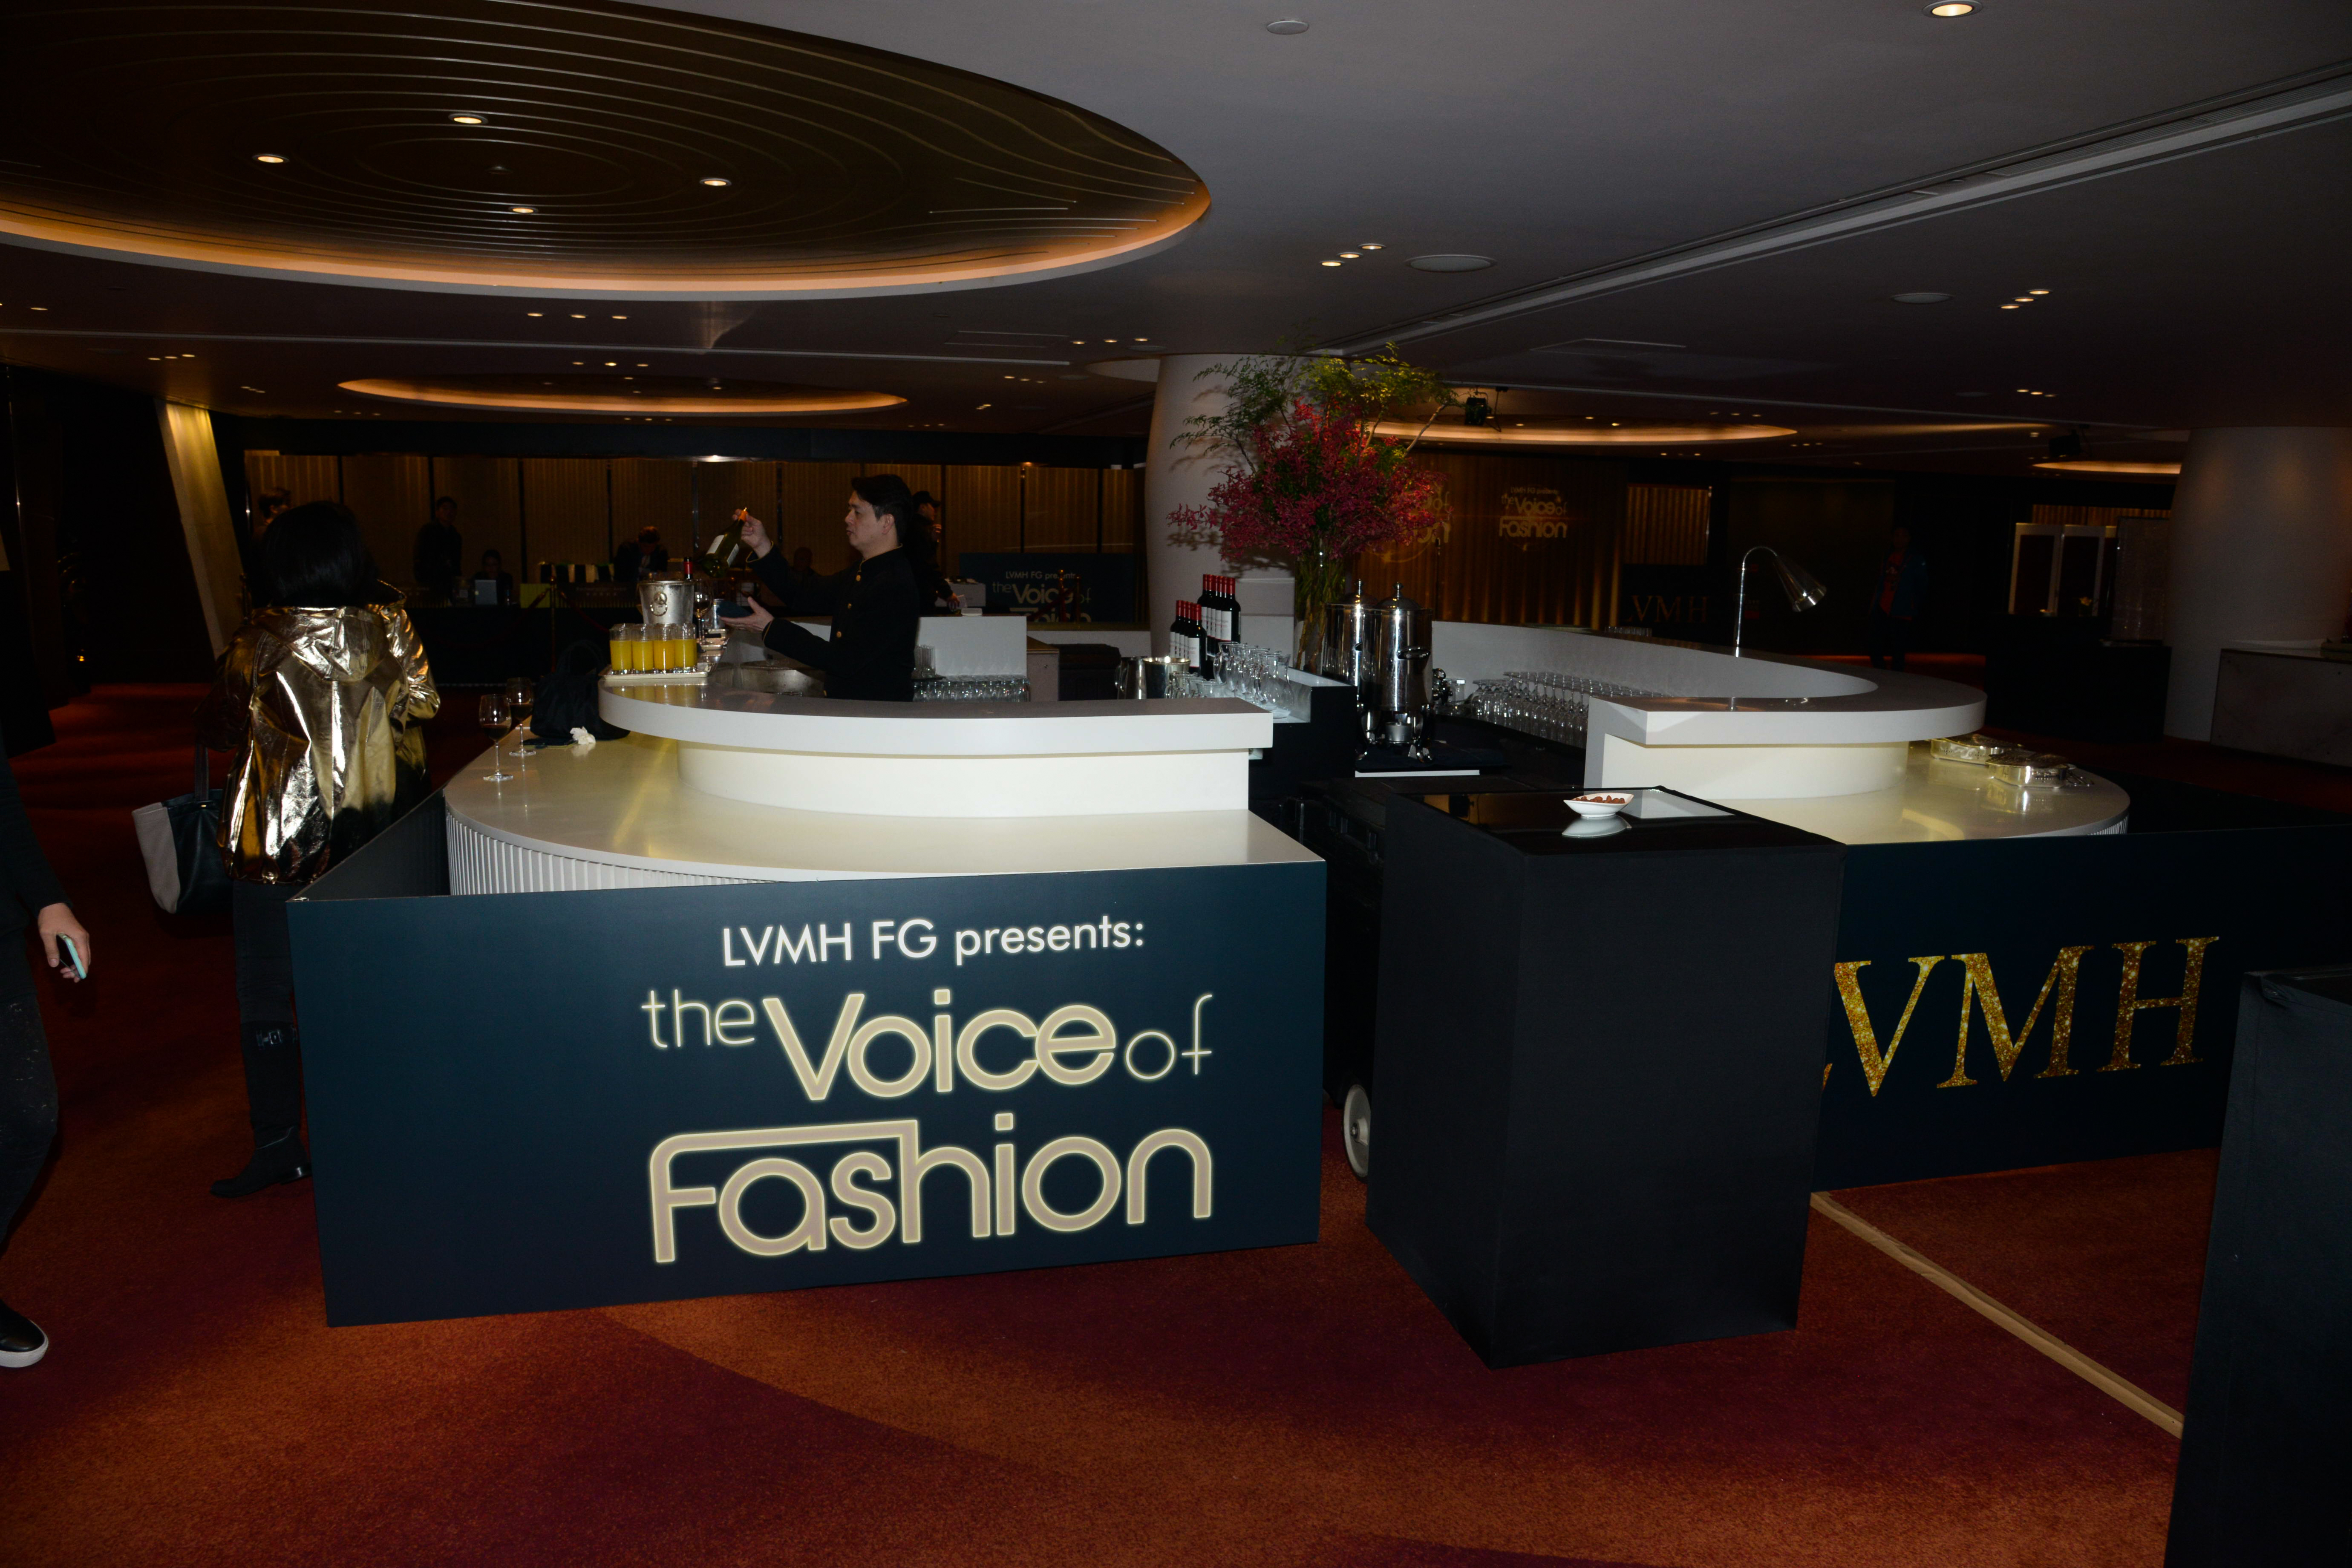 LVMH FG - the Voice of Fashion